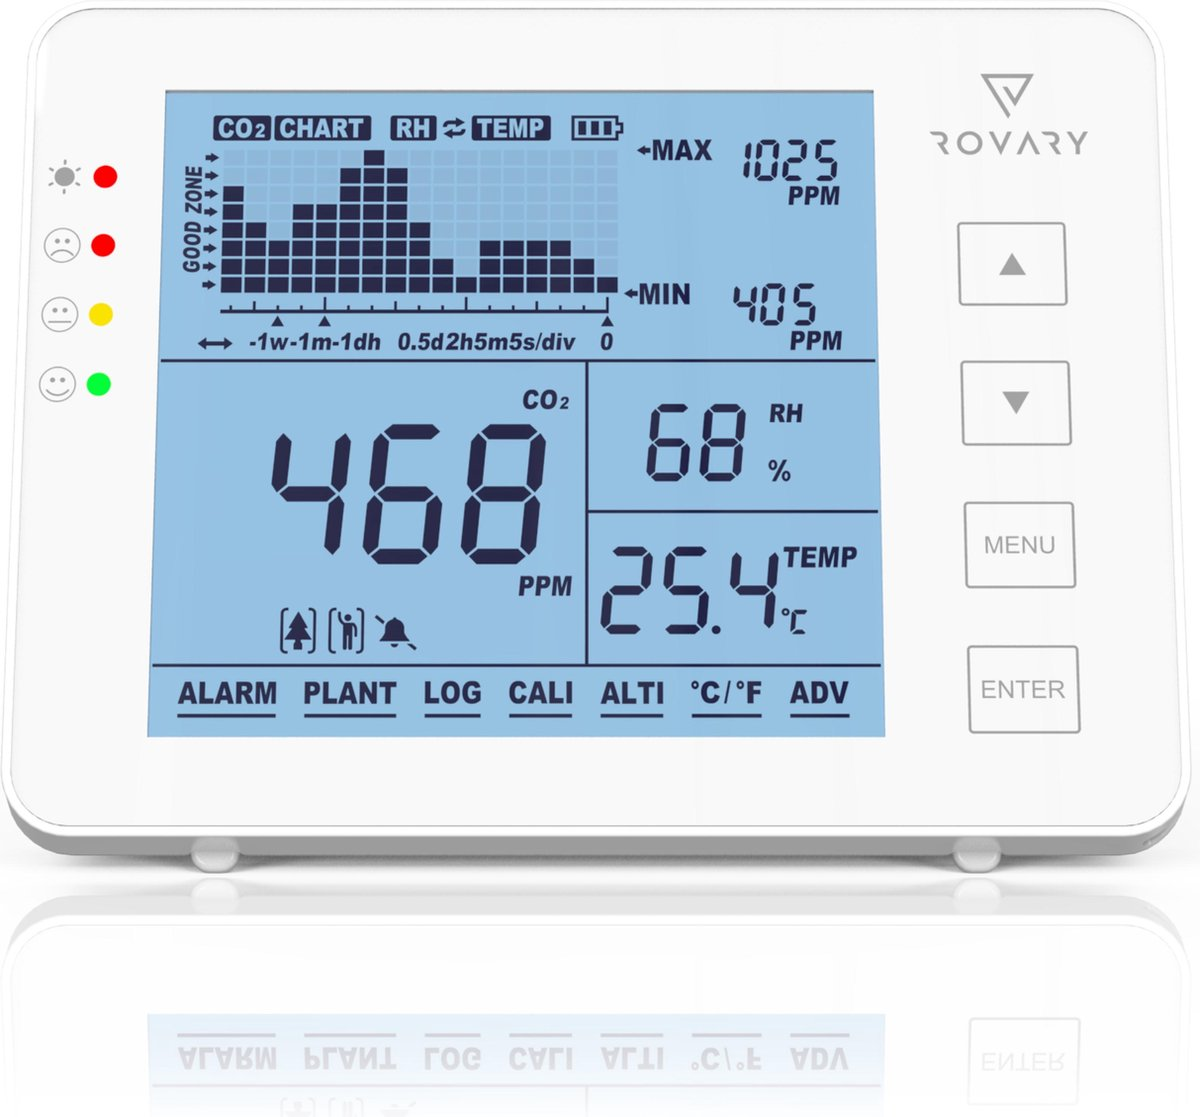 Rovary CO2 meter - Inclusief E-book   Luchtkwaliteitsmeter   CO2 meter binnen   CO2 melder & monitor